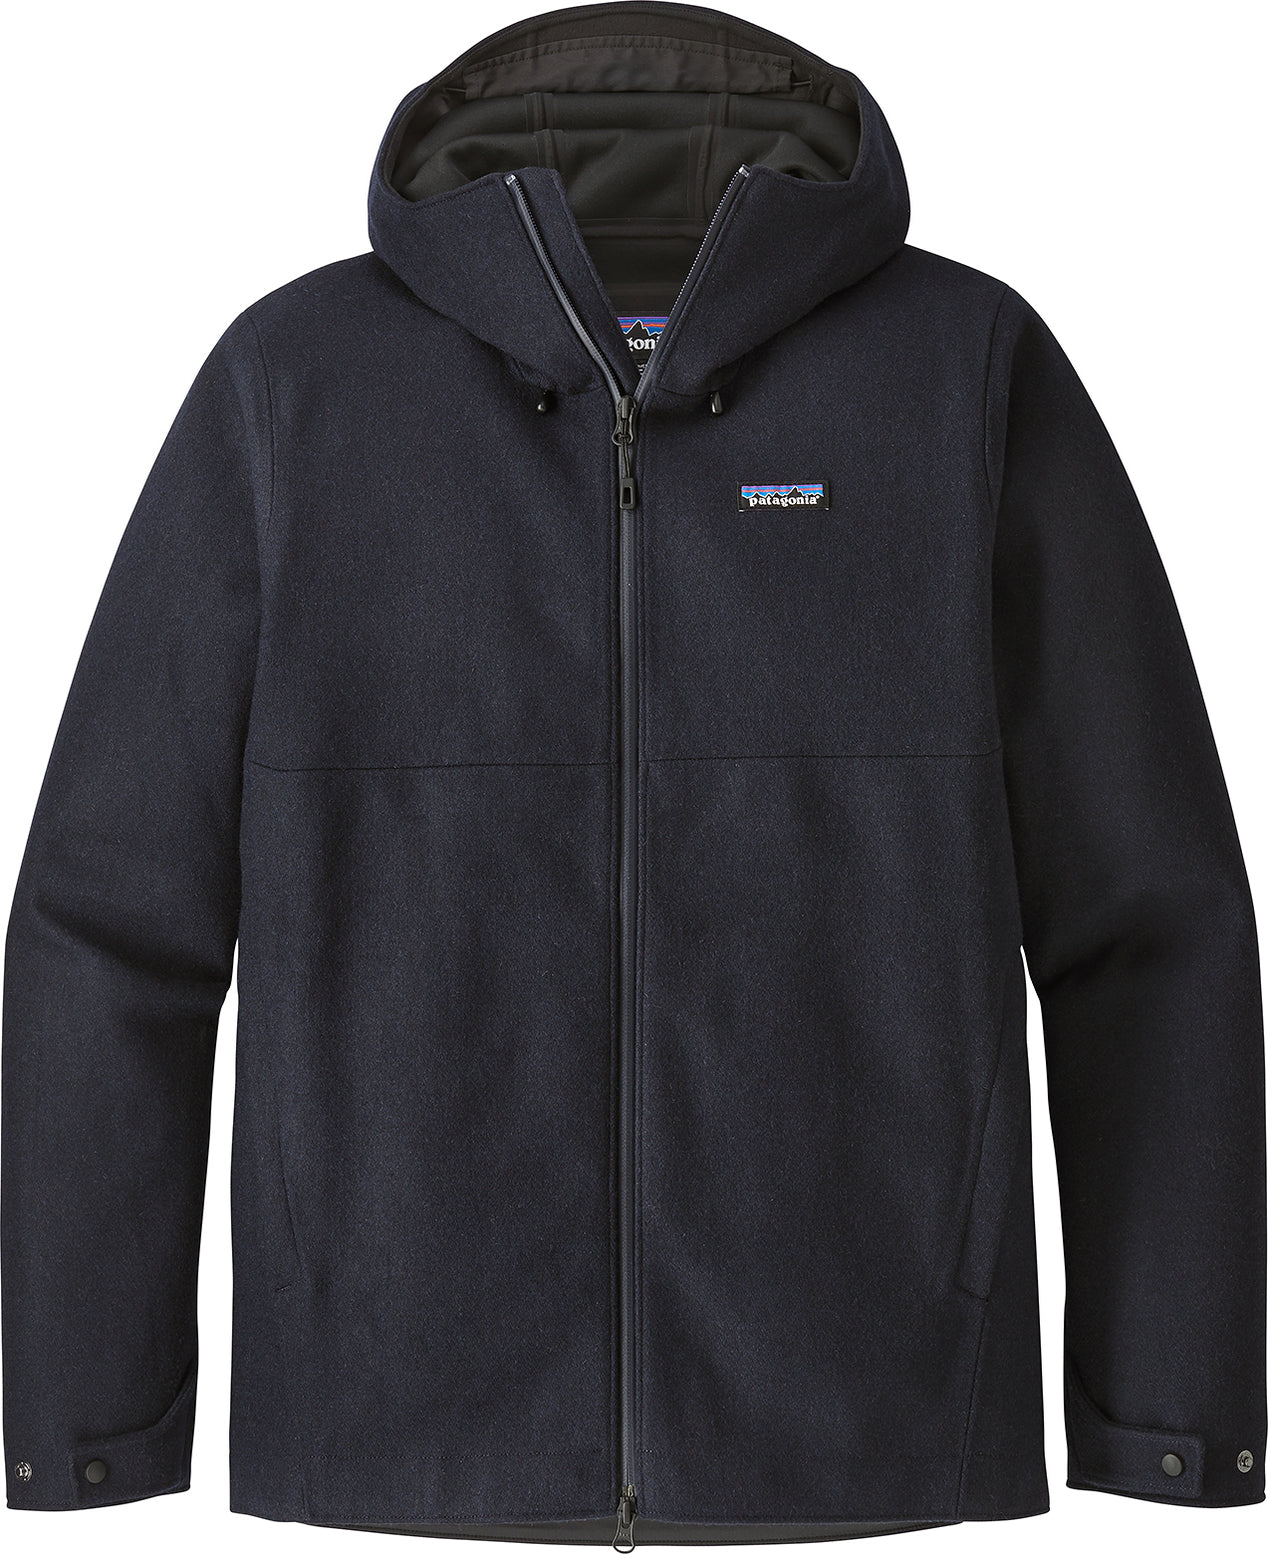 e48dfd3ef Recycled Wool Jacket - Men's